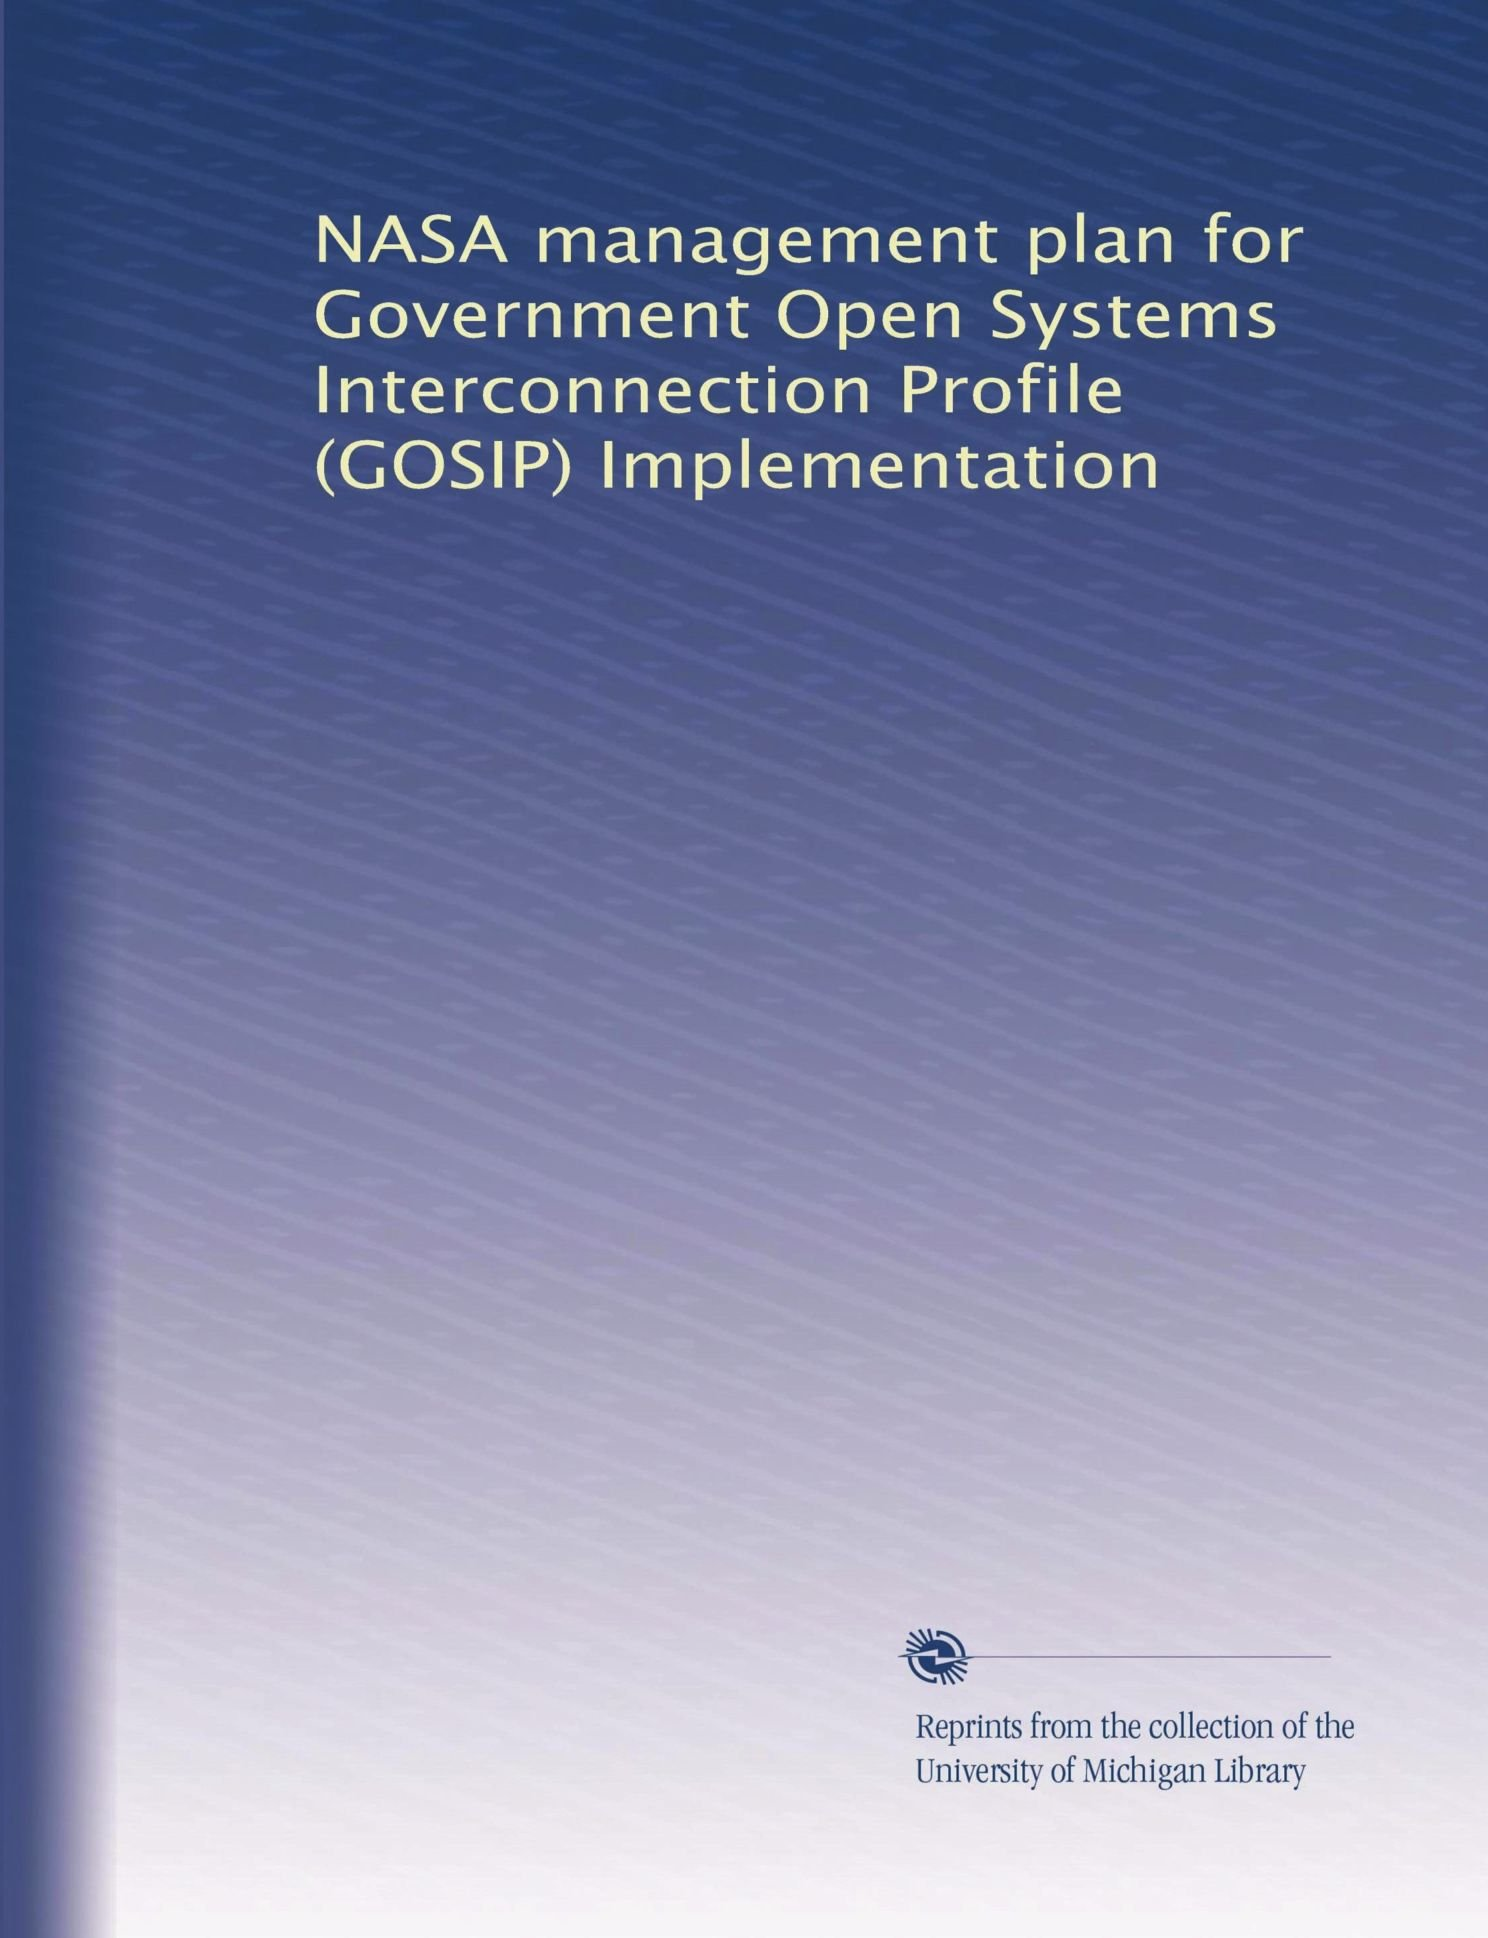 NASA management plan for Government Open Systems Interconnection Profile (GOSIP) Implementation